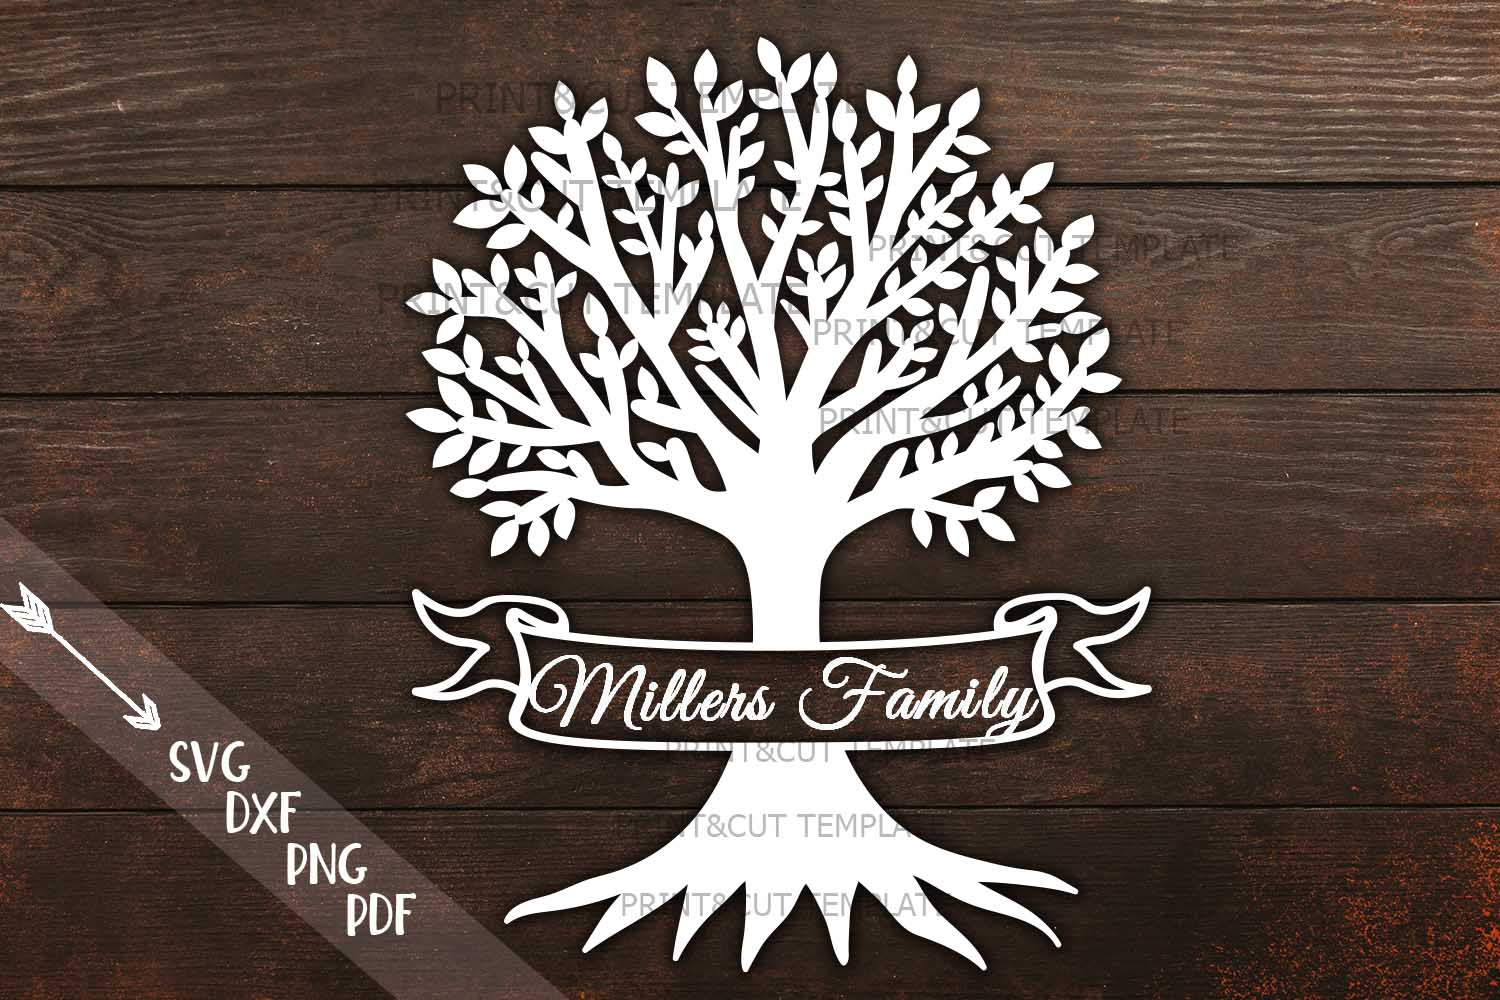 Family Tree Svg Graphic By Cornelia Creative Fabrica